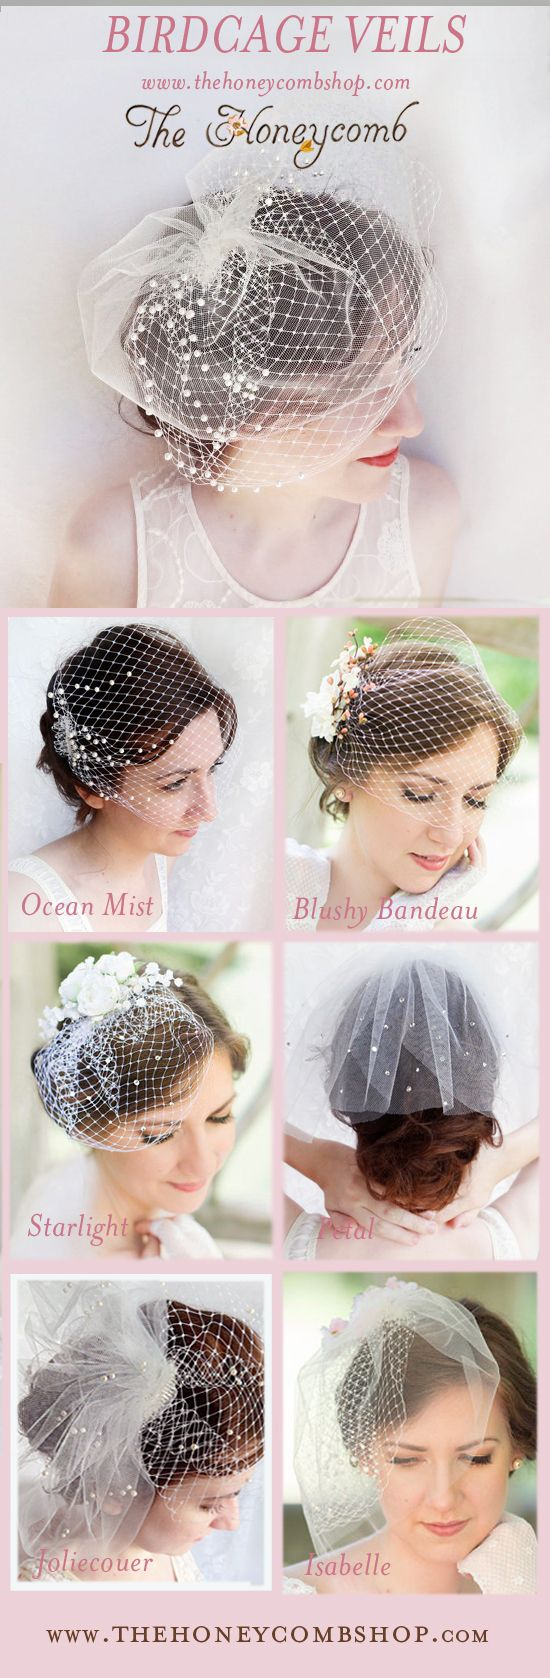 23 best images about wedding hair stuff on pinterest | wavy